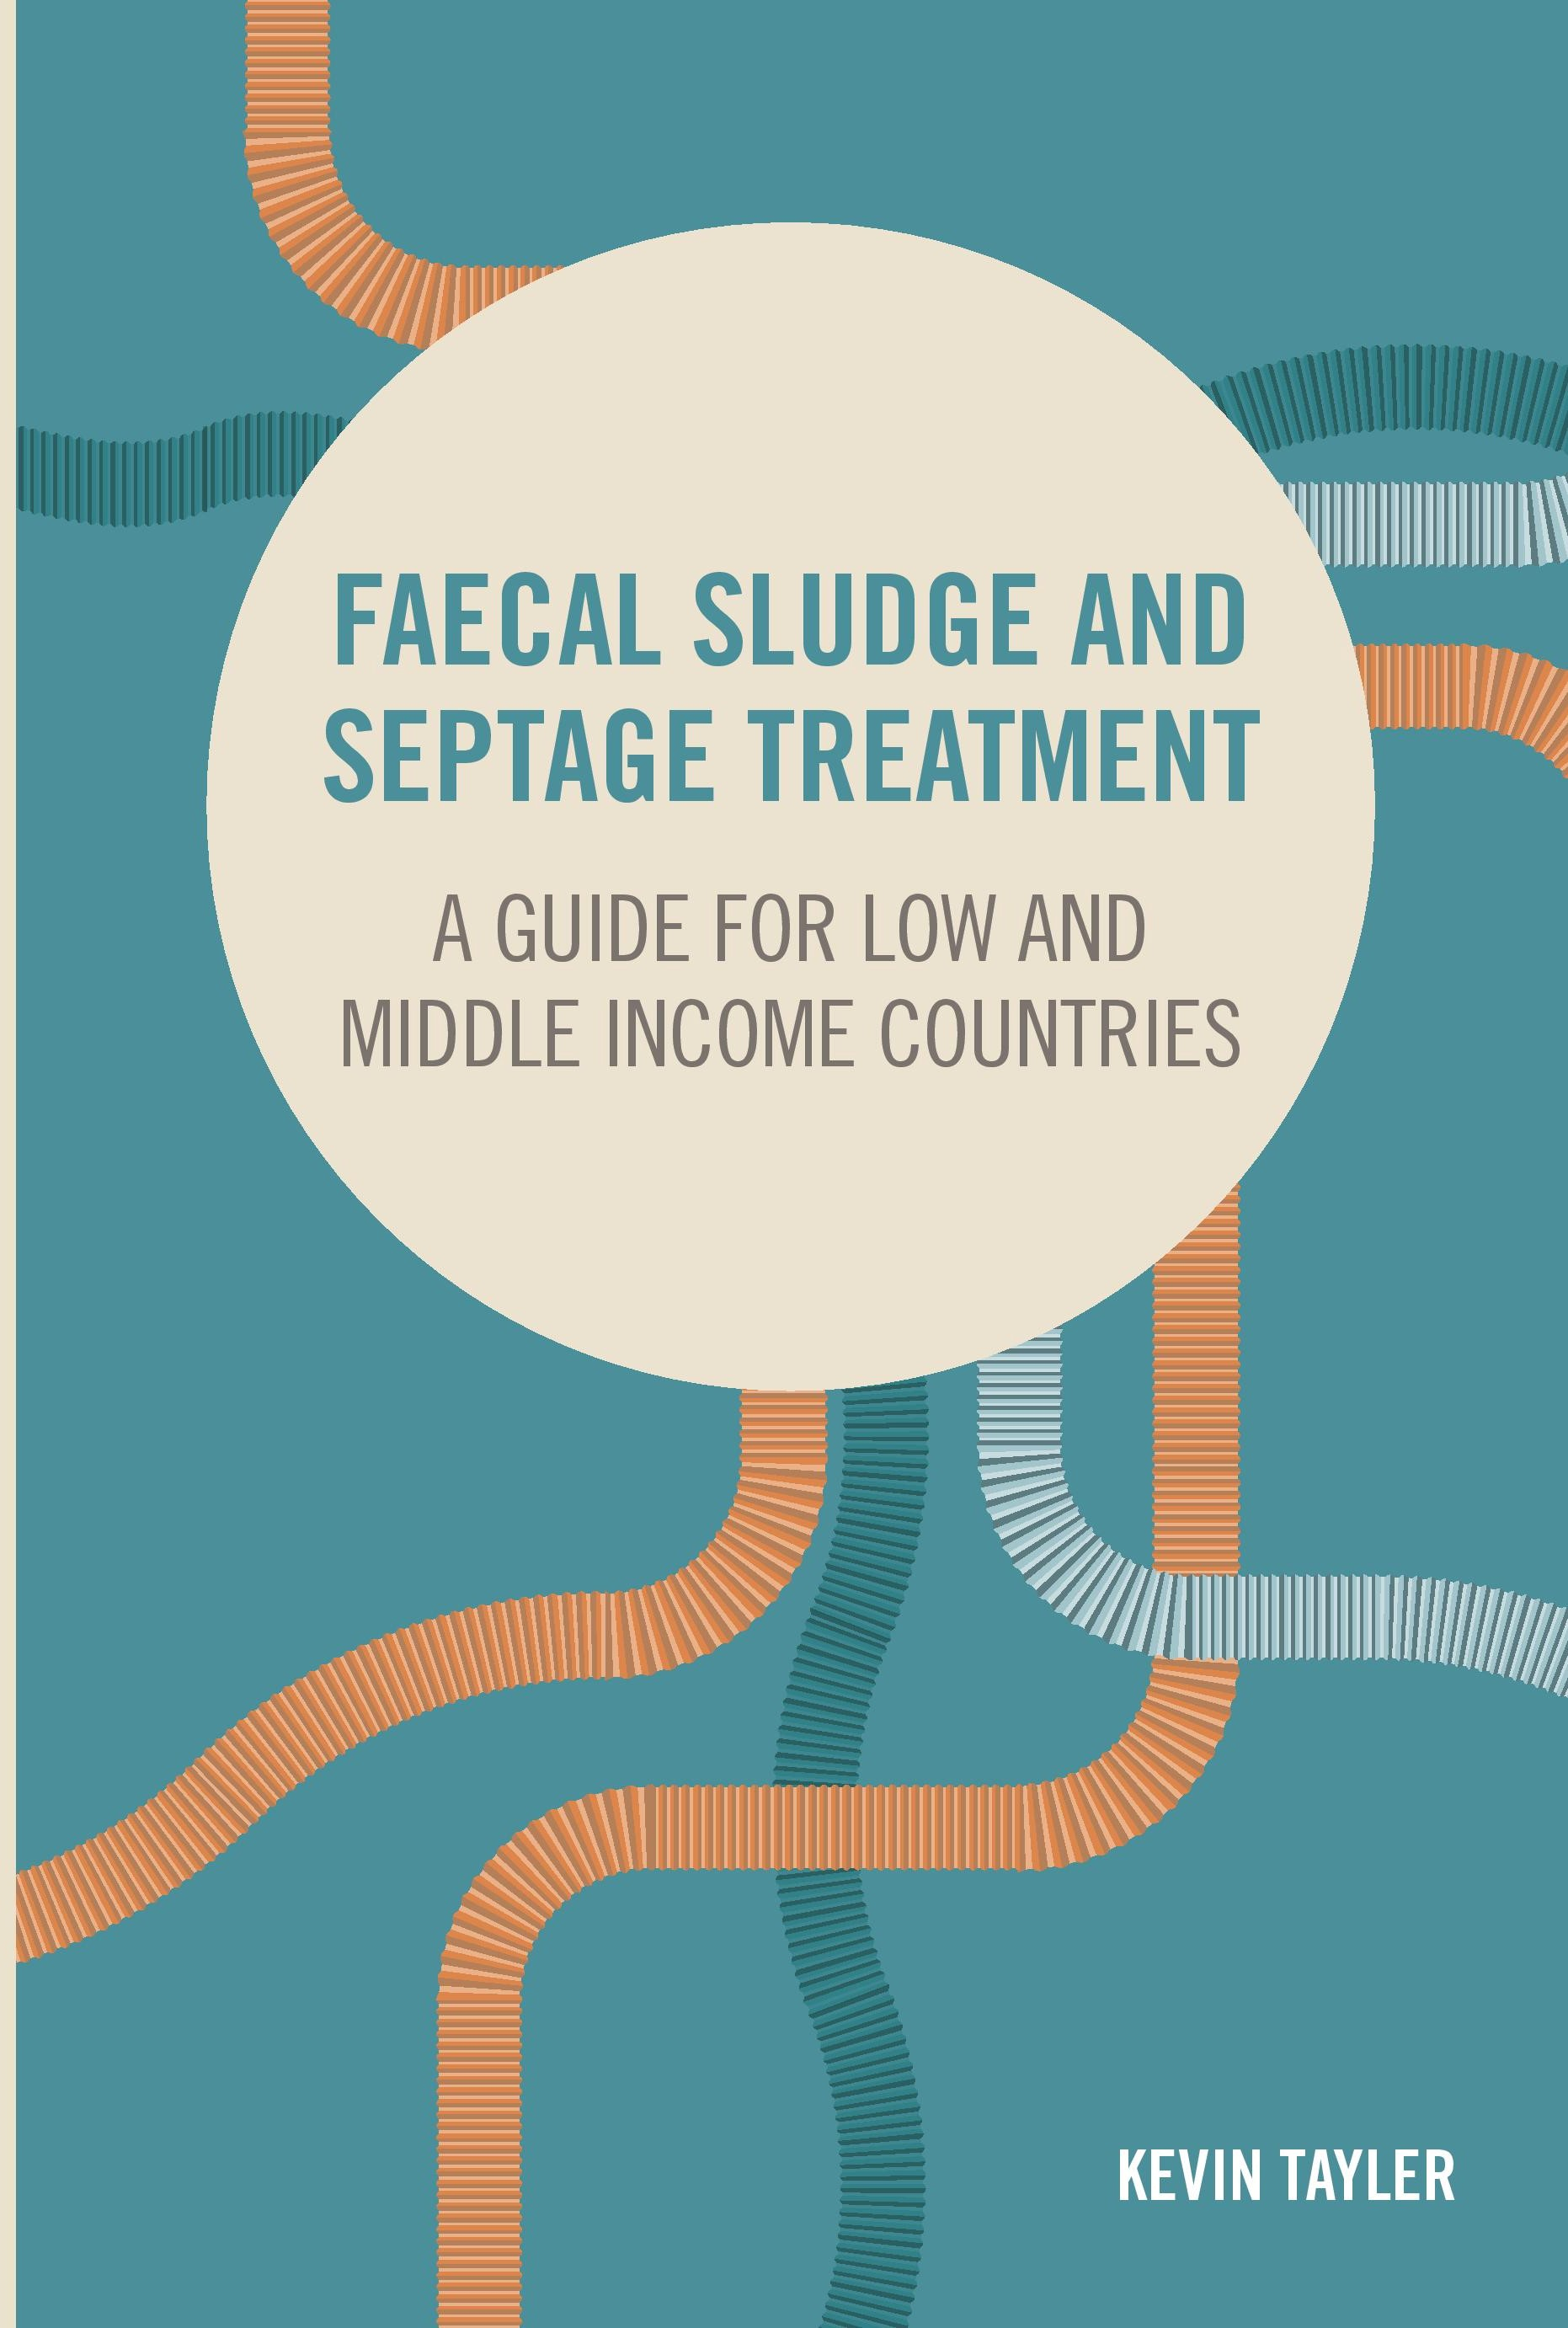 Half the world away? Fecal sludge and septage treatment in low and